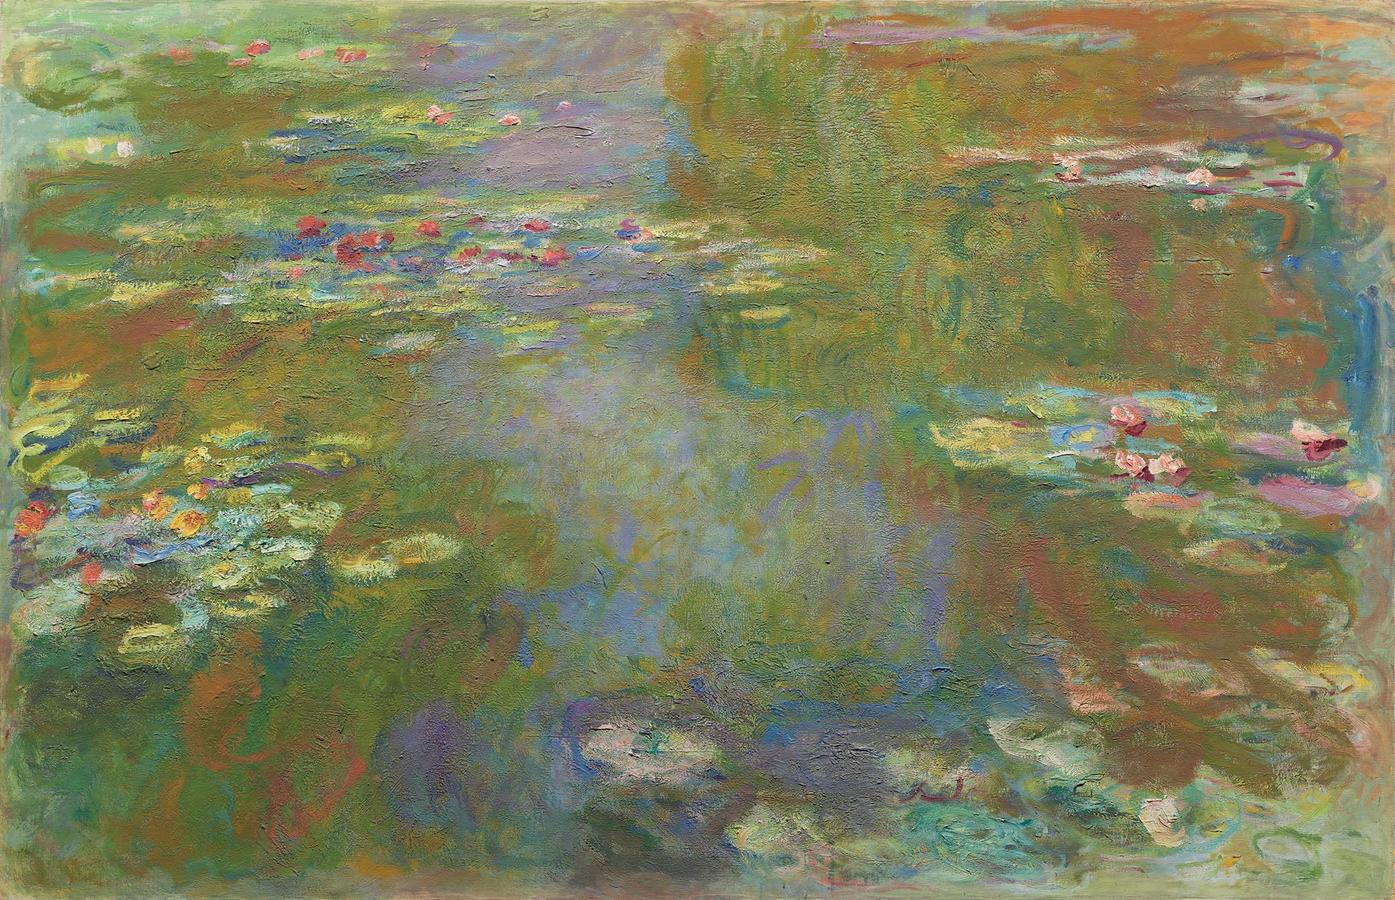 """Monet, """"Water Lily Pond"""" 1917-22, oil on canvas, The Art Institute of Chicago, Gift of Mrs. Harvey Kaplan, 1982.825"""